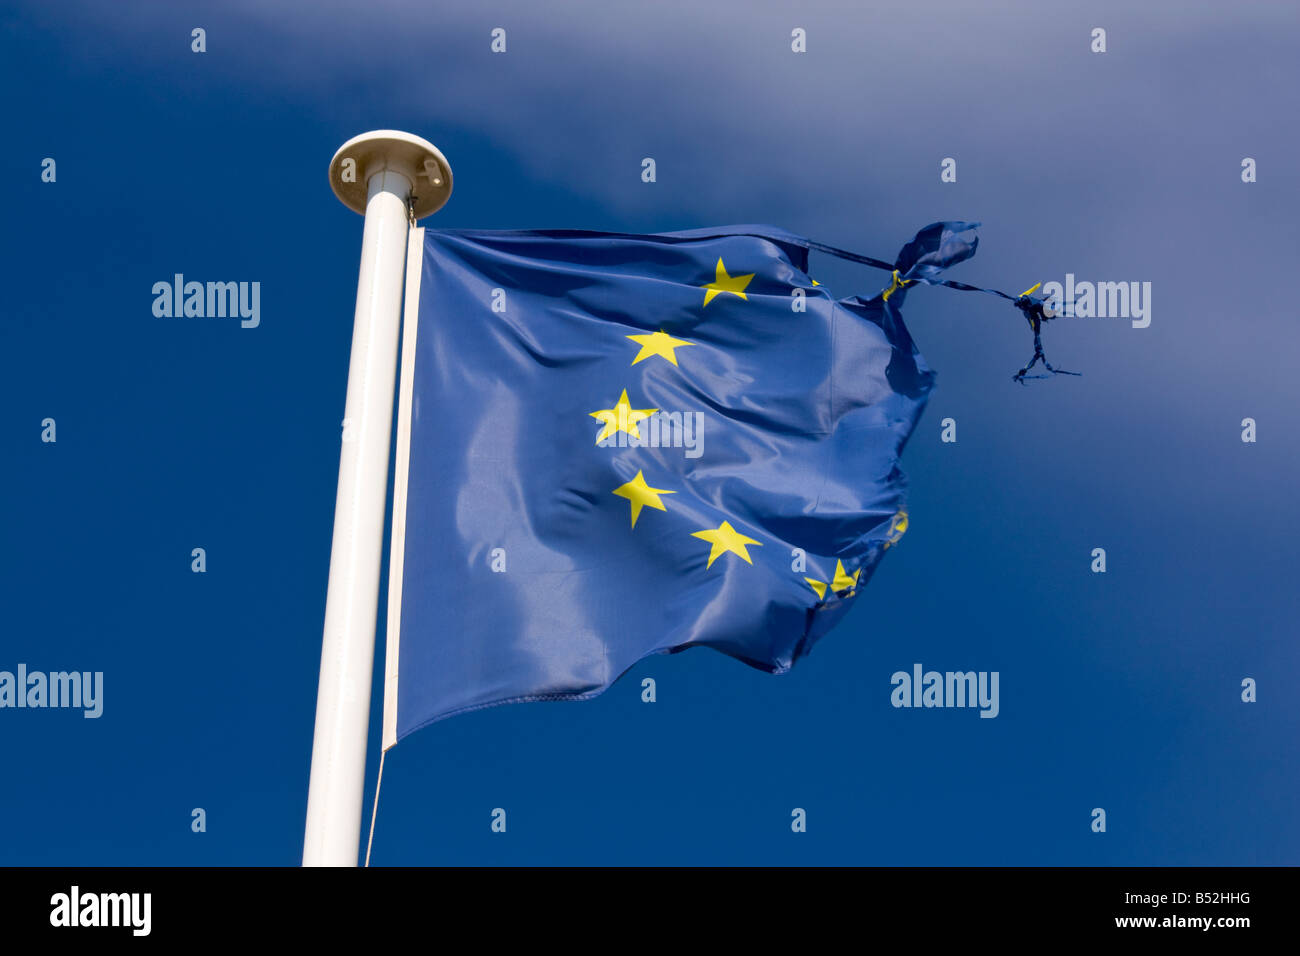 A tattered flag of the European Union waves in the wind - Stock Image